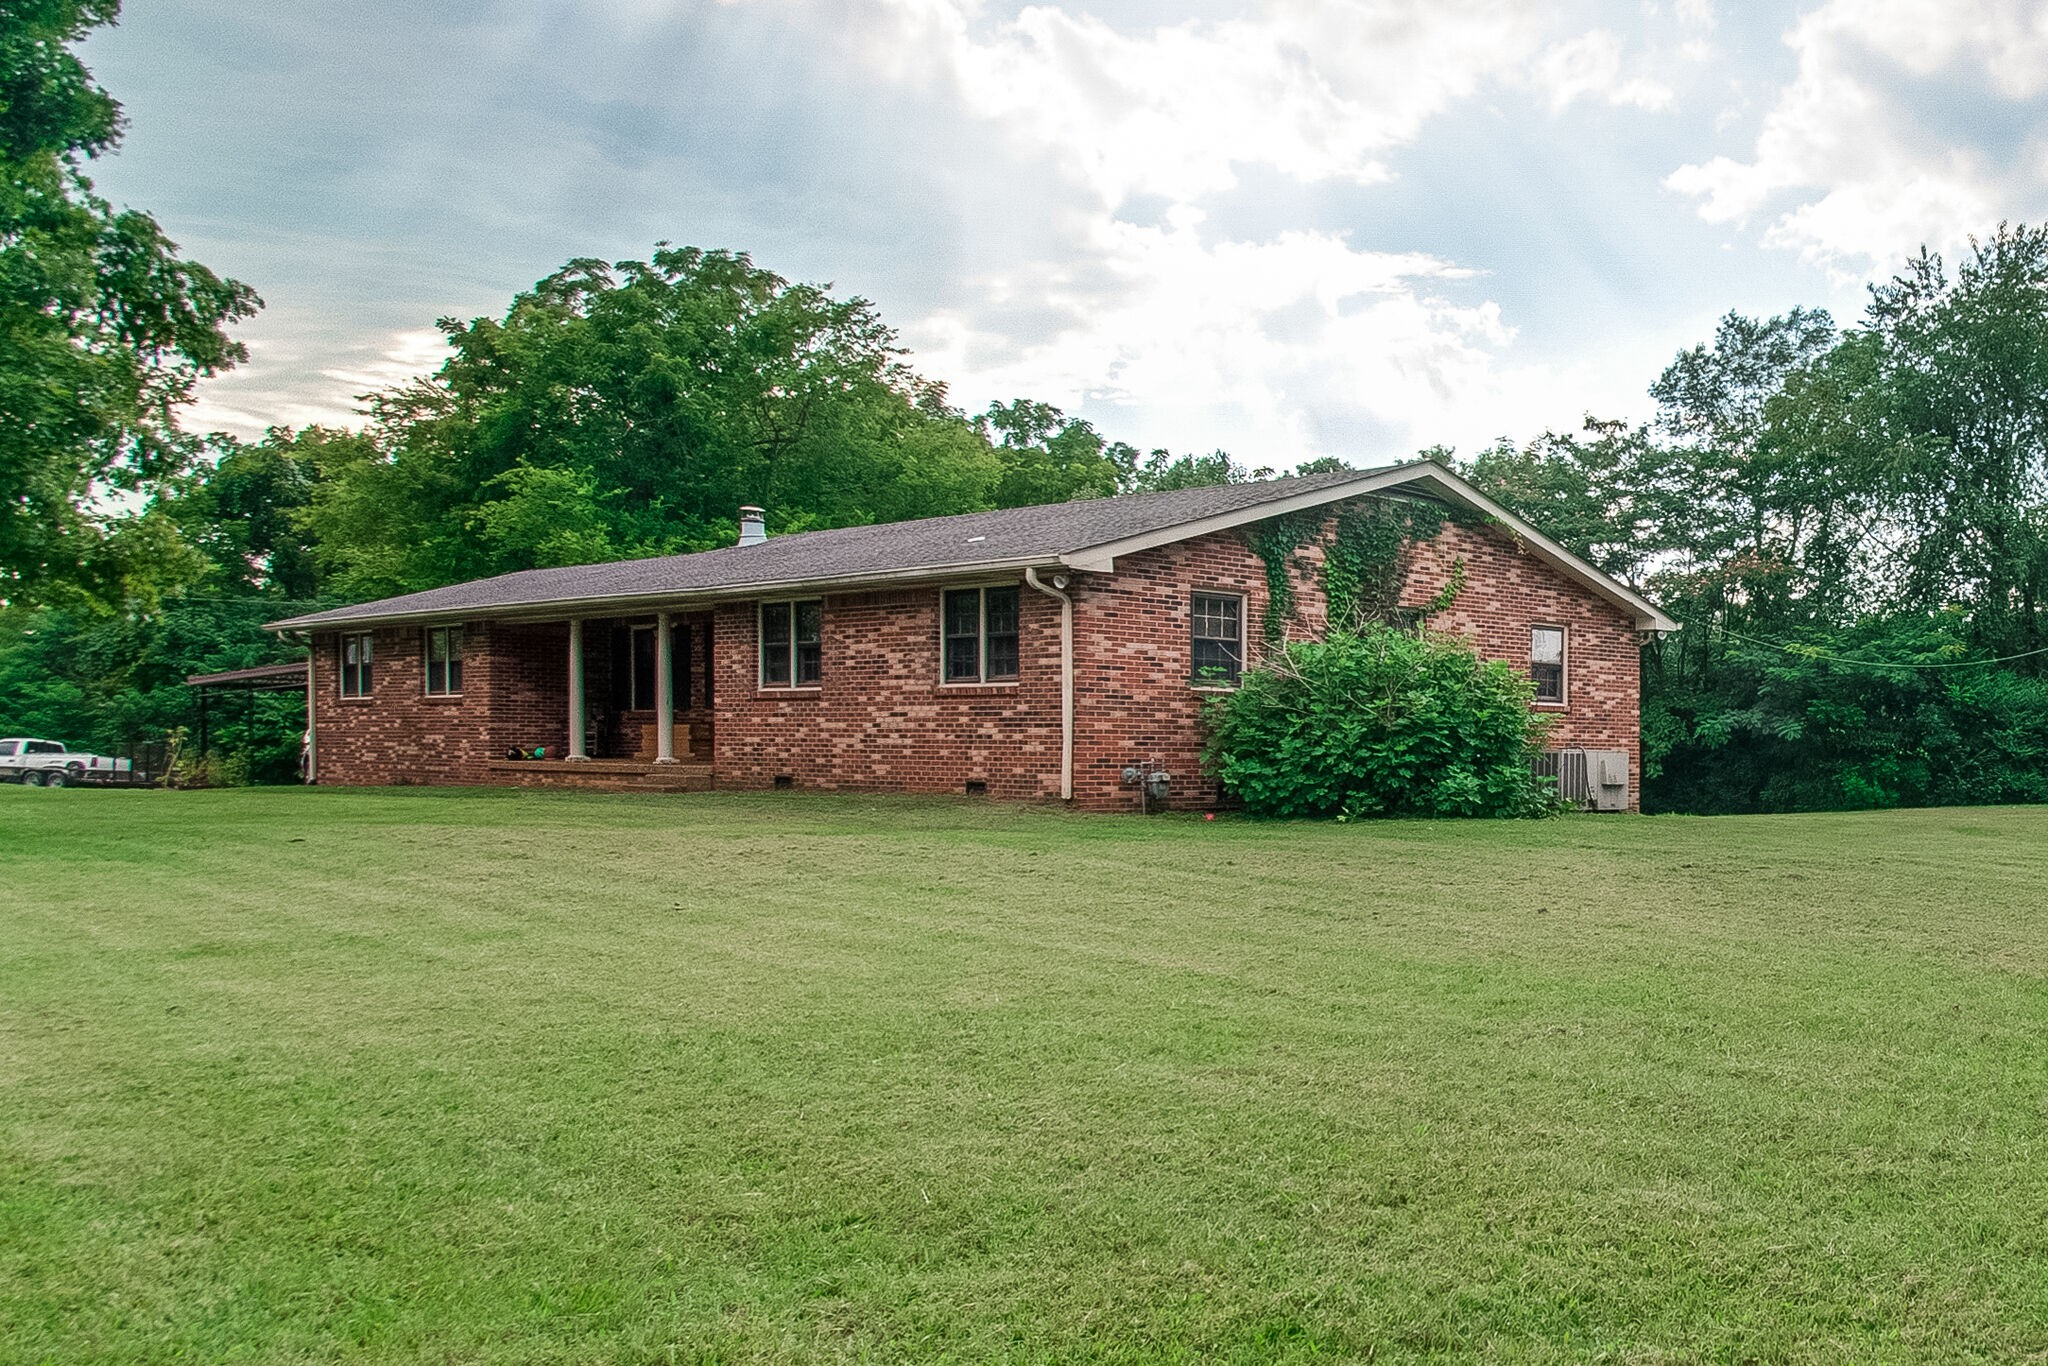 A POTENTIAL COMMERCIAL PROPERTY! A house with approx.1.5 acres of flat land. It is currently under rent. The lease ends July 2021 and it comes with the purchase. Beautiful 1984 built large brick ranch home w/ 2 car carport. Large kitchen and bonus room. This house is located in the center of Fairview surrounded by many commercial businesses (restaurants, banks and Walmart). This can be rezoned to build multi residential units or commercial income producing assets. Buyer to verify all MLS info